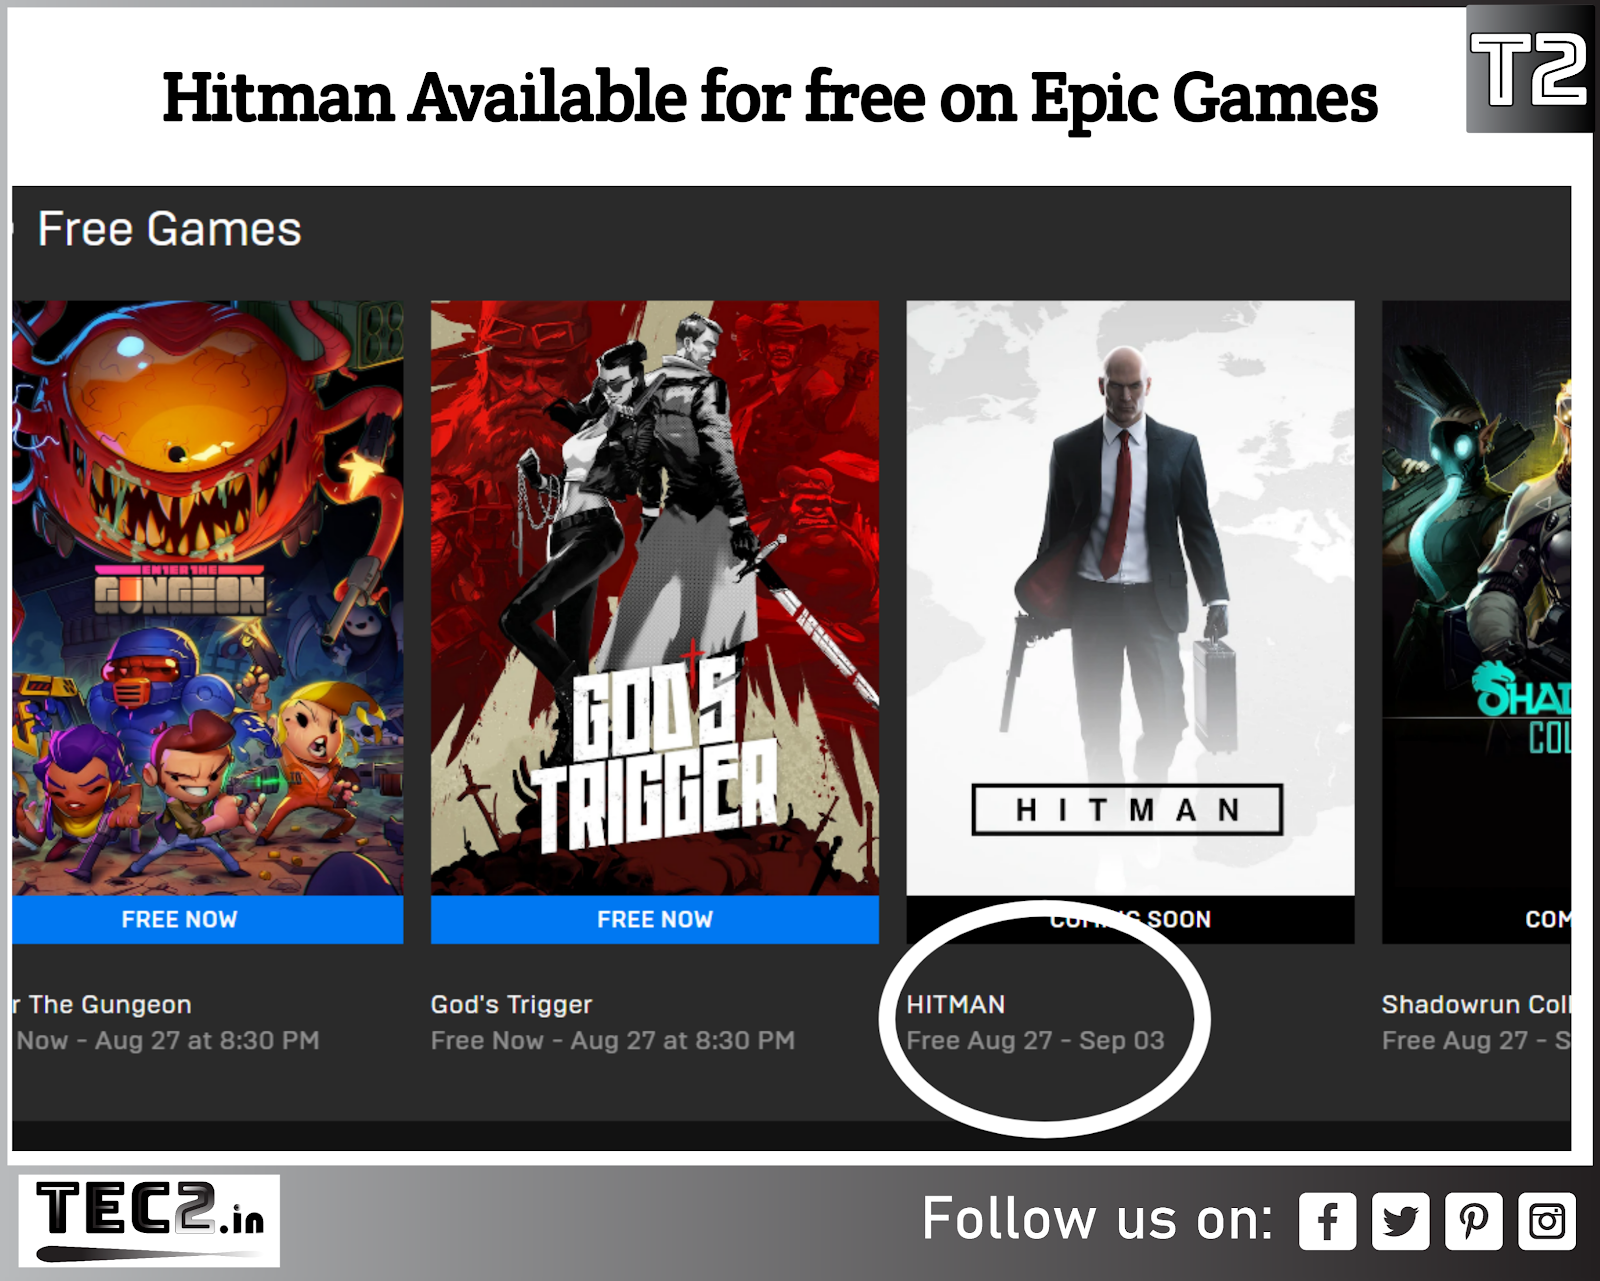 Hitman Game Of The Year Edition Going Free On Epic Games From Today